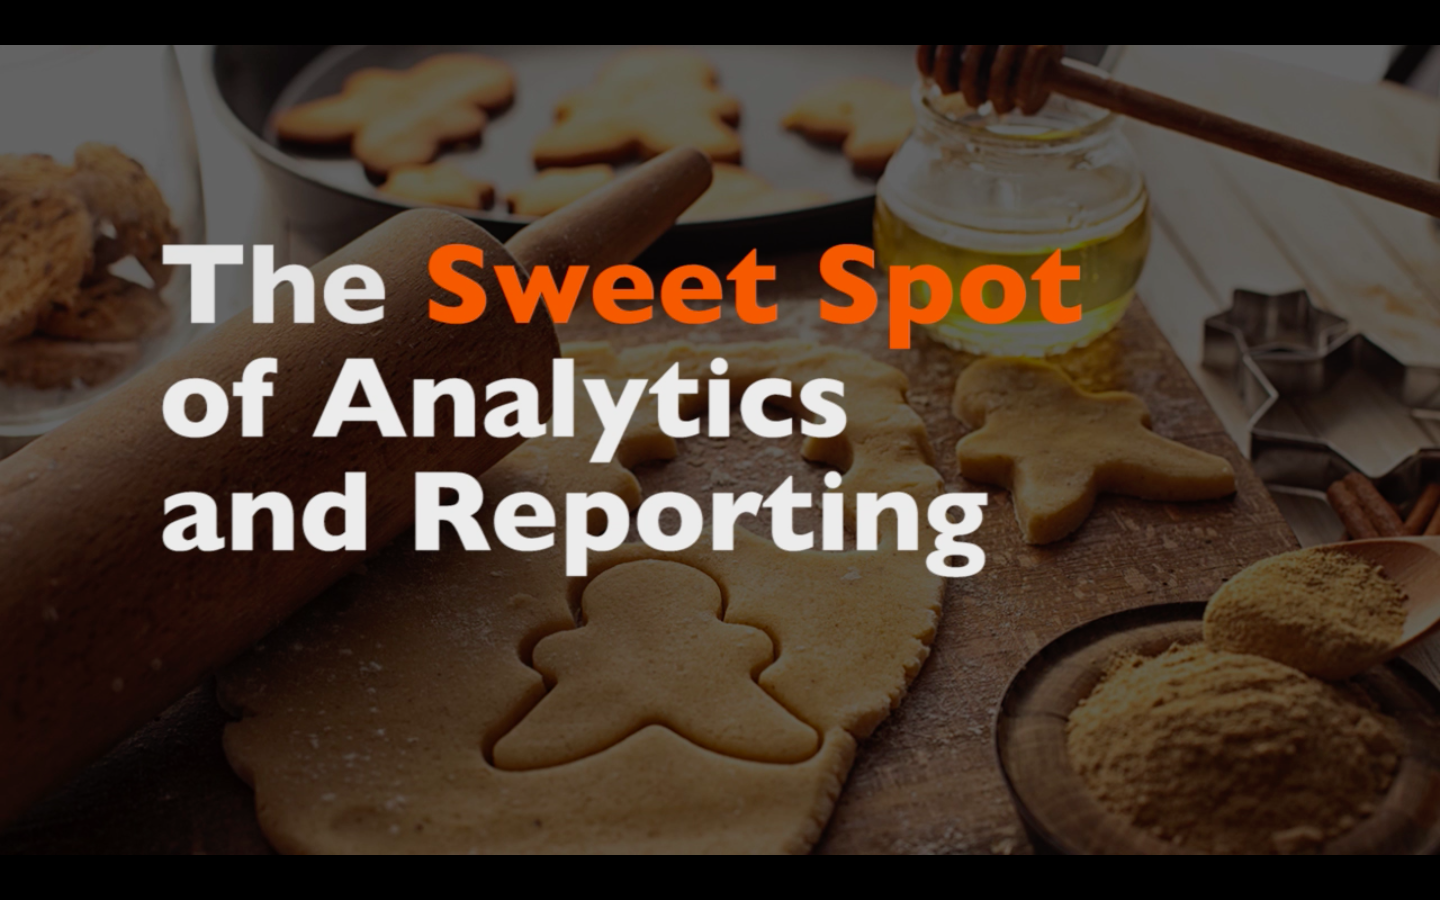 A B2B Marketing Feast, Part 5/5: The Sweet Spot of Analytics and Reporting